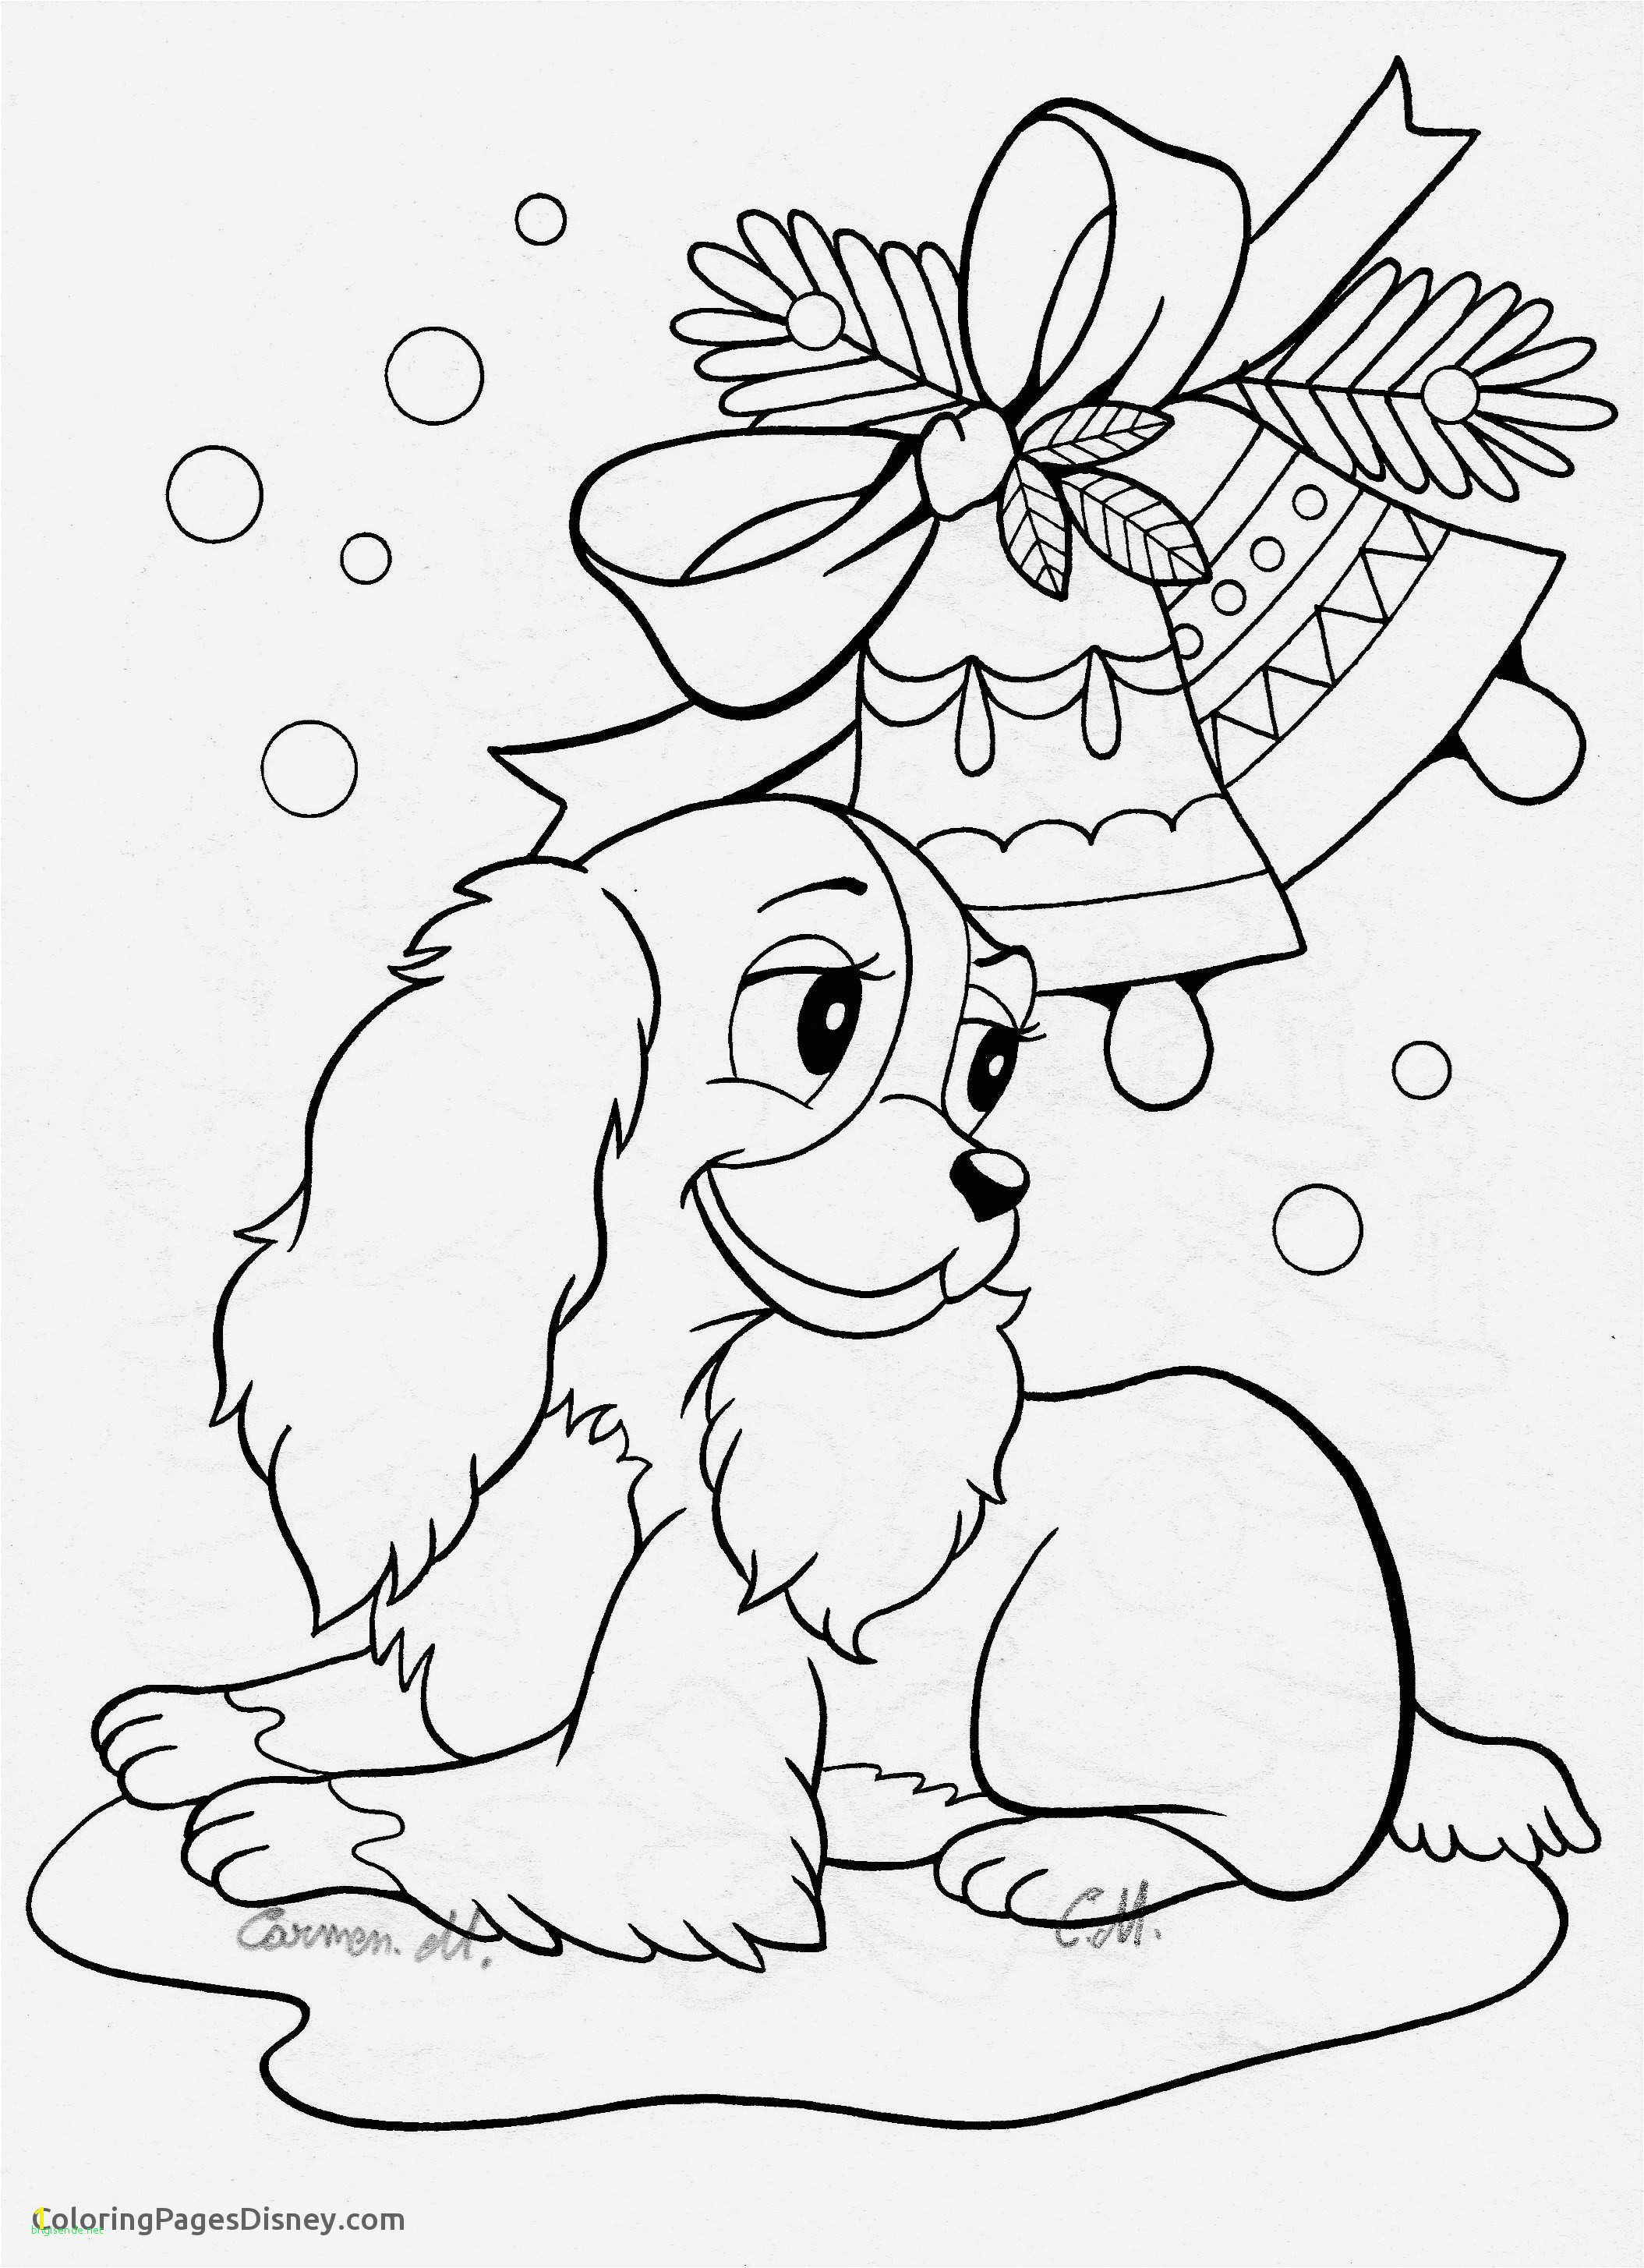 Free Coloring Pages Disney Printables Awesome Letter Y Coloring Pages Elegant Printable Od Dog Coloring Pages